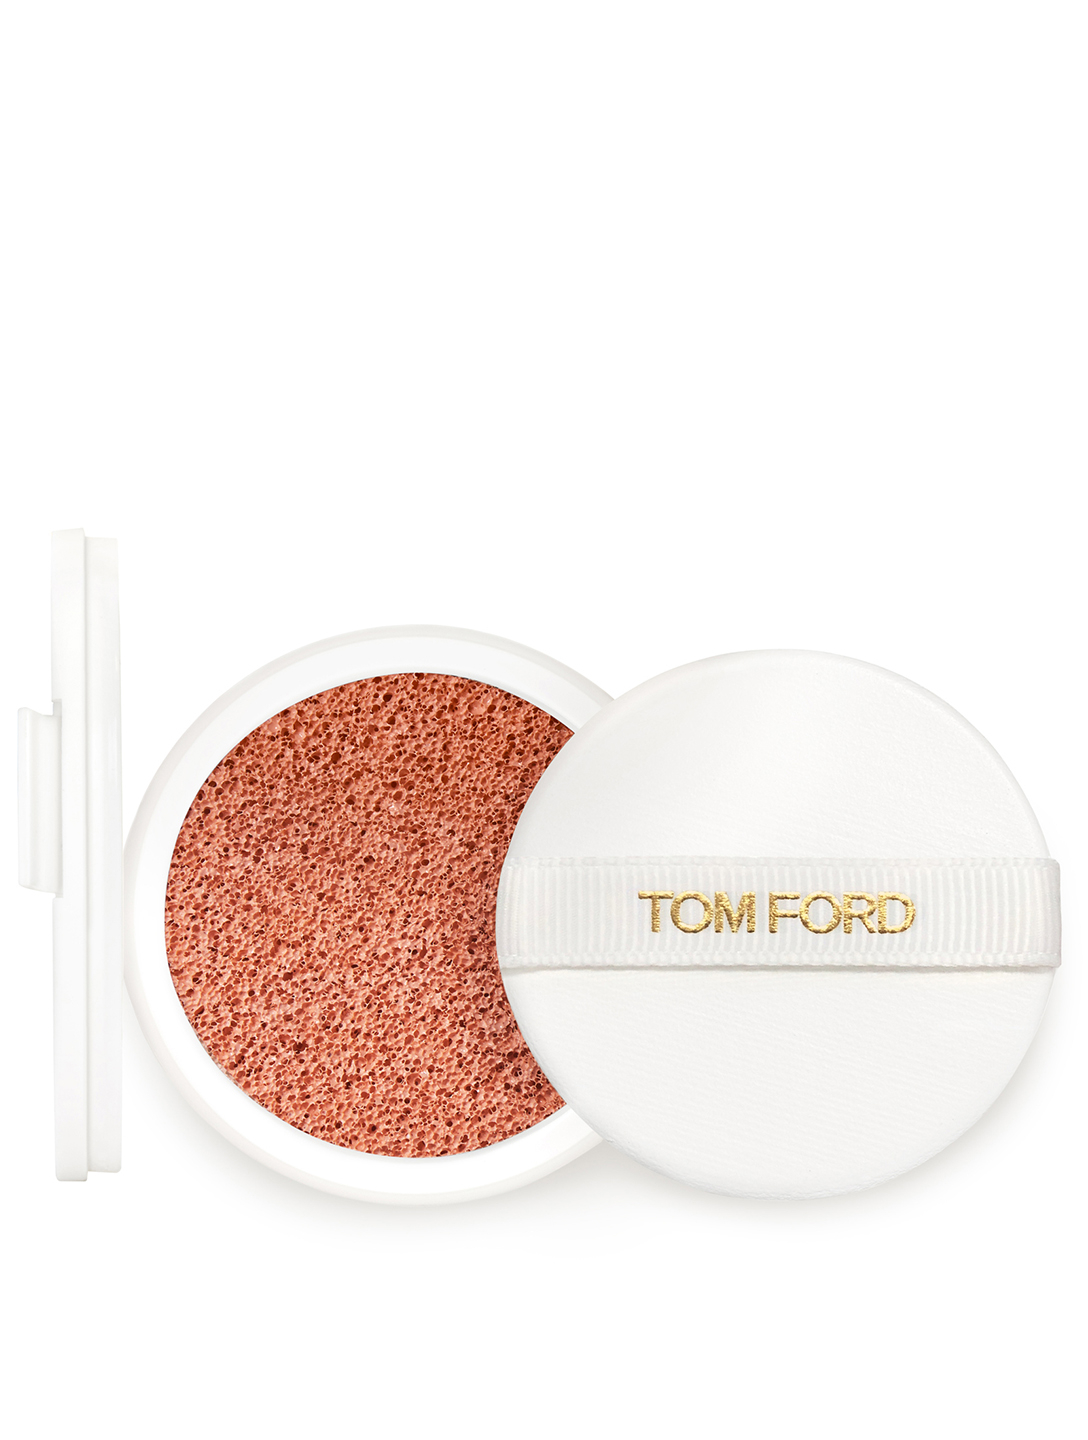 TOM FORD Soleil Glow Tone Up Foundation Hydrating Cushion Compact Refill SPF 45 Beauty Neutral